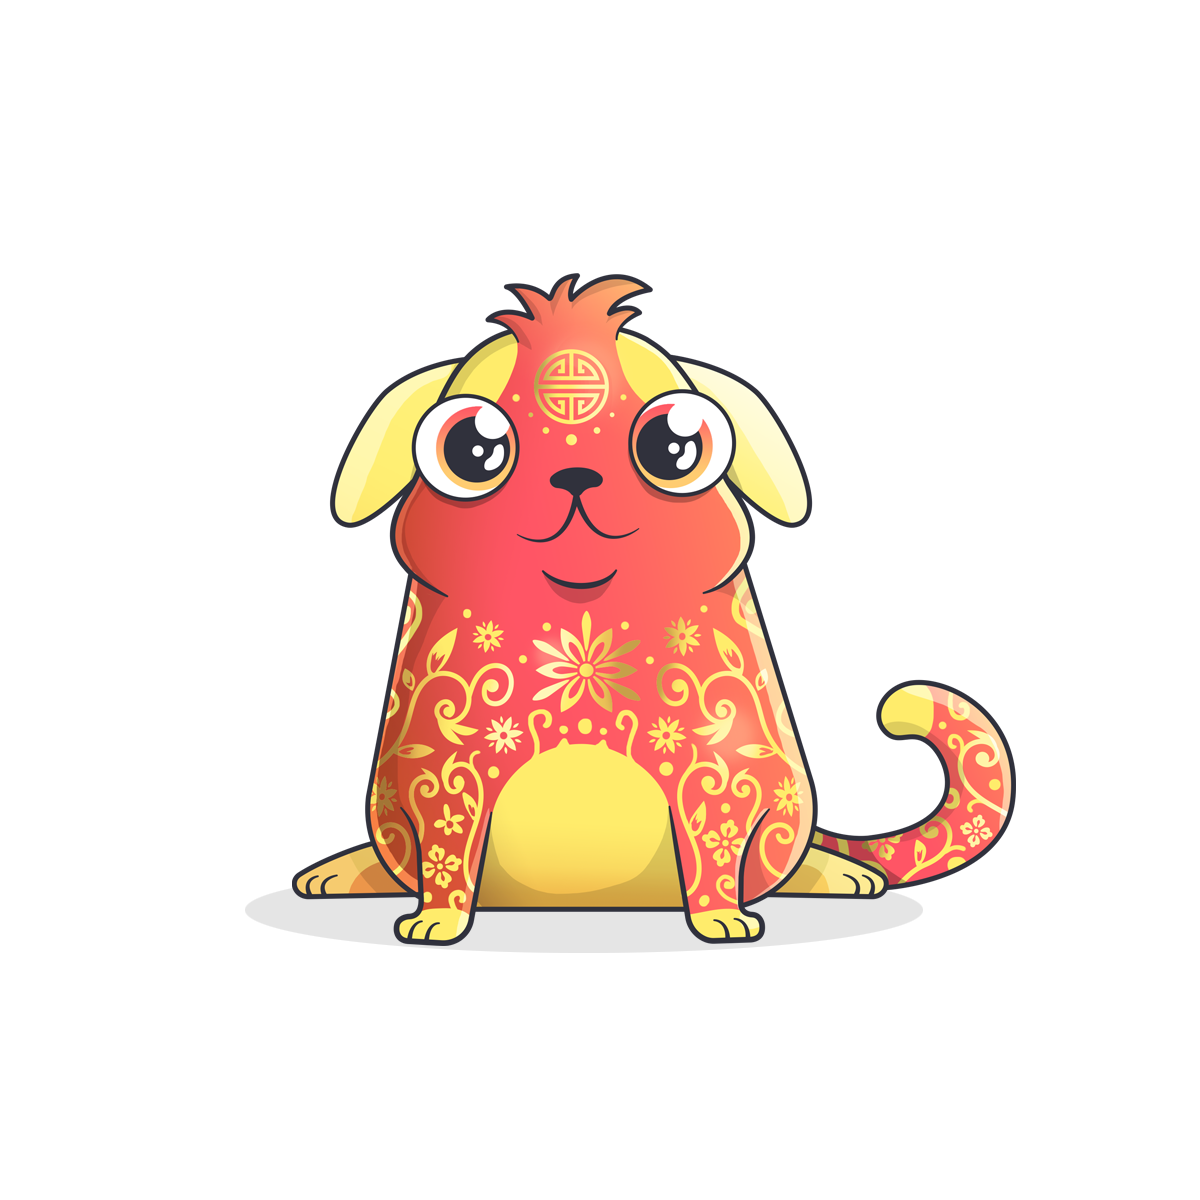 cryptokitty #588614